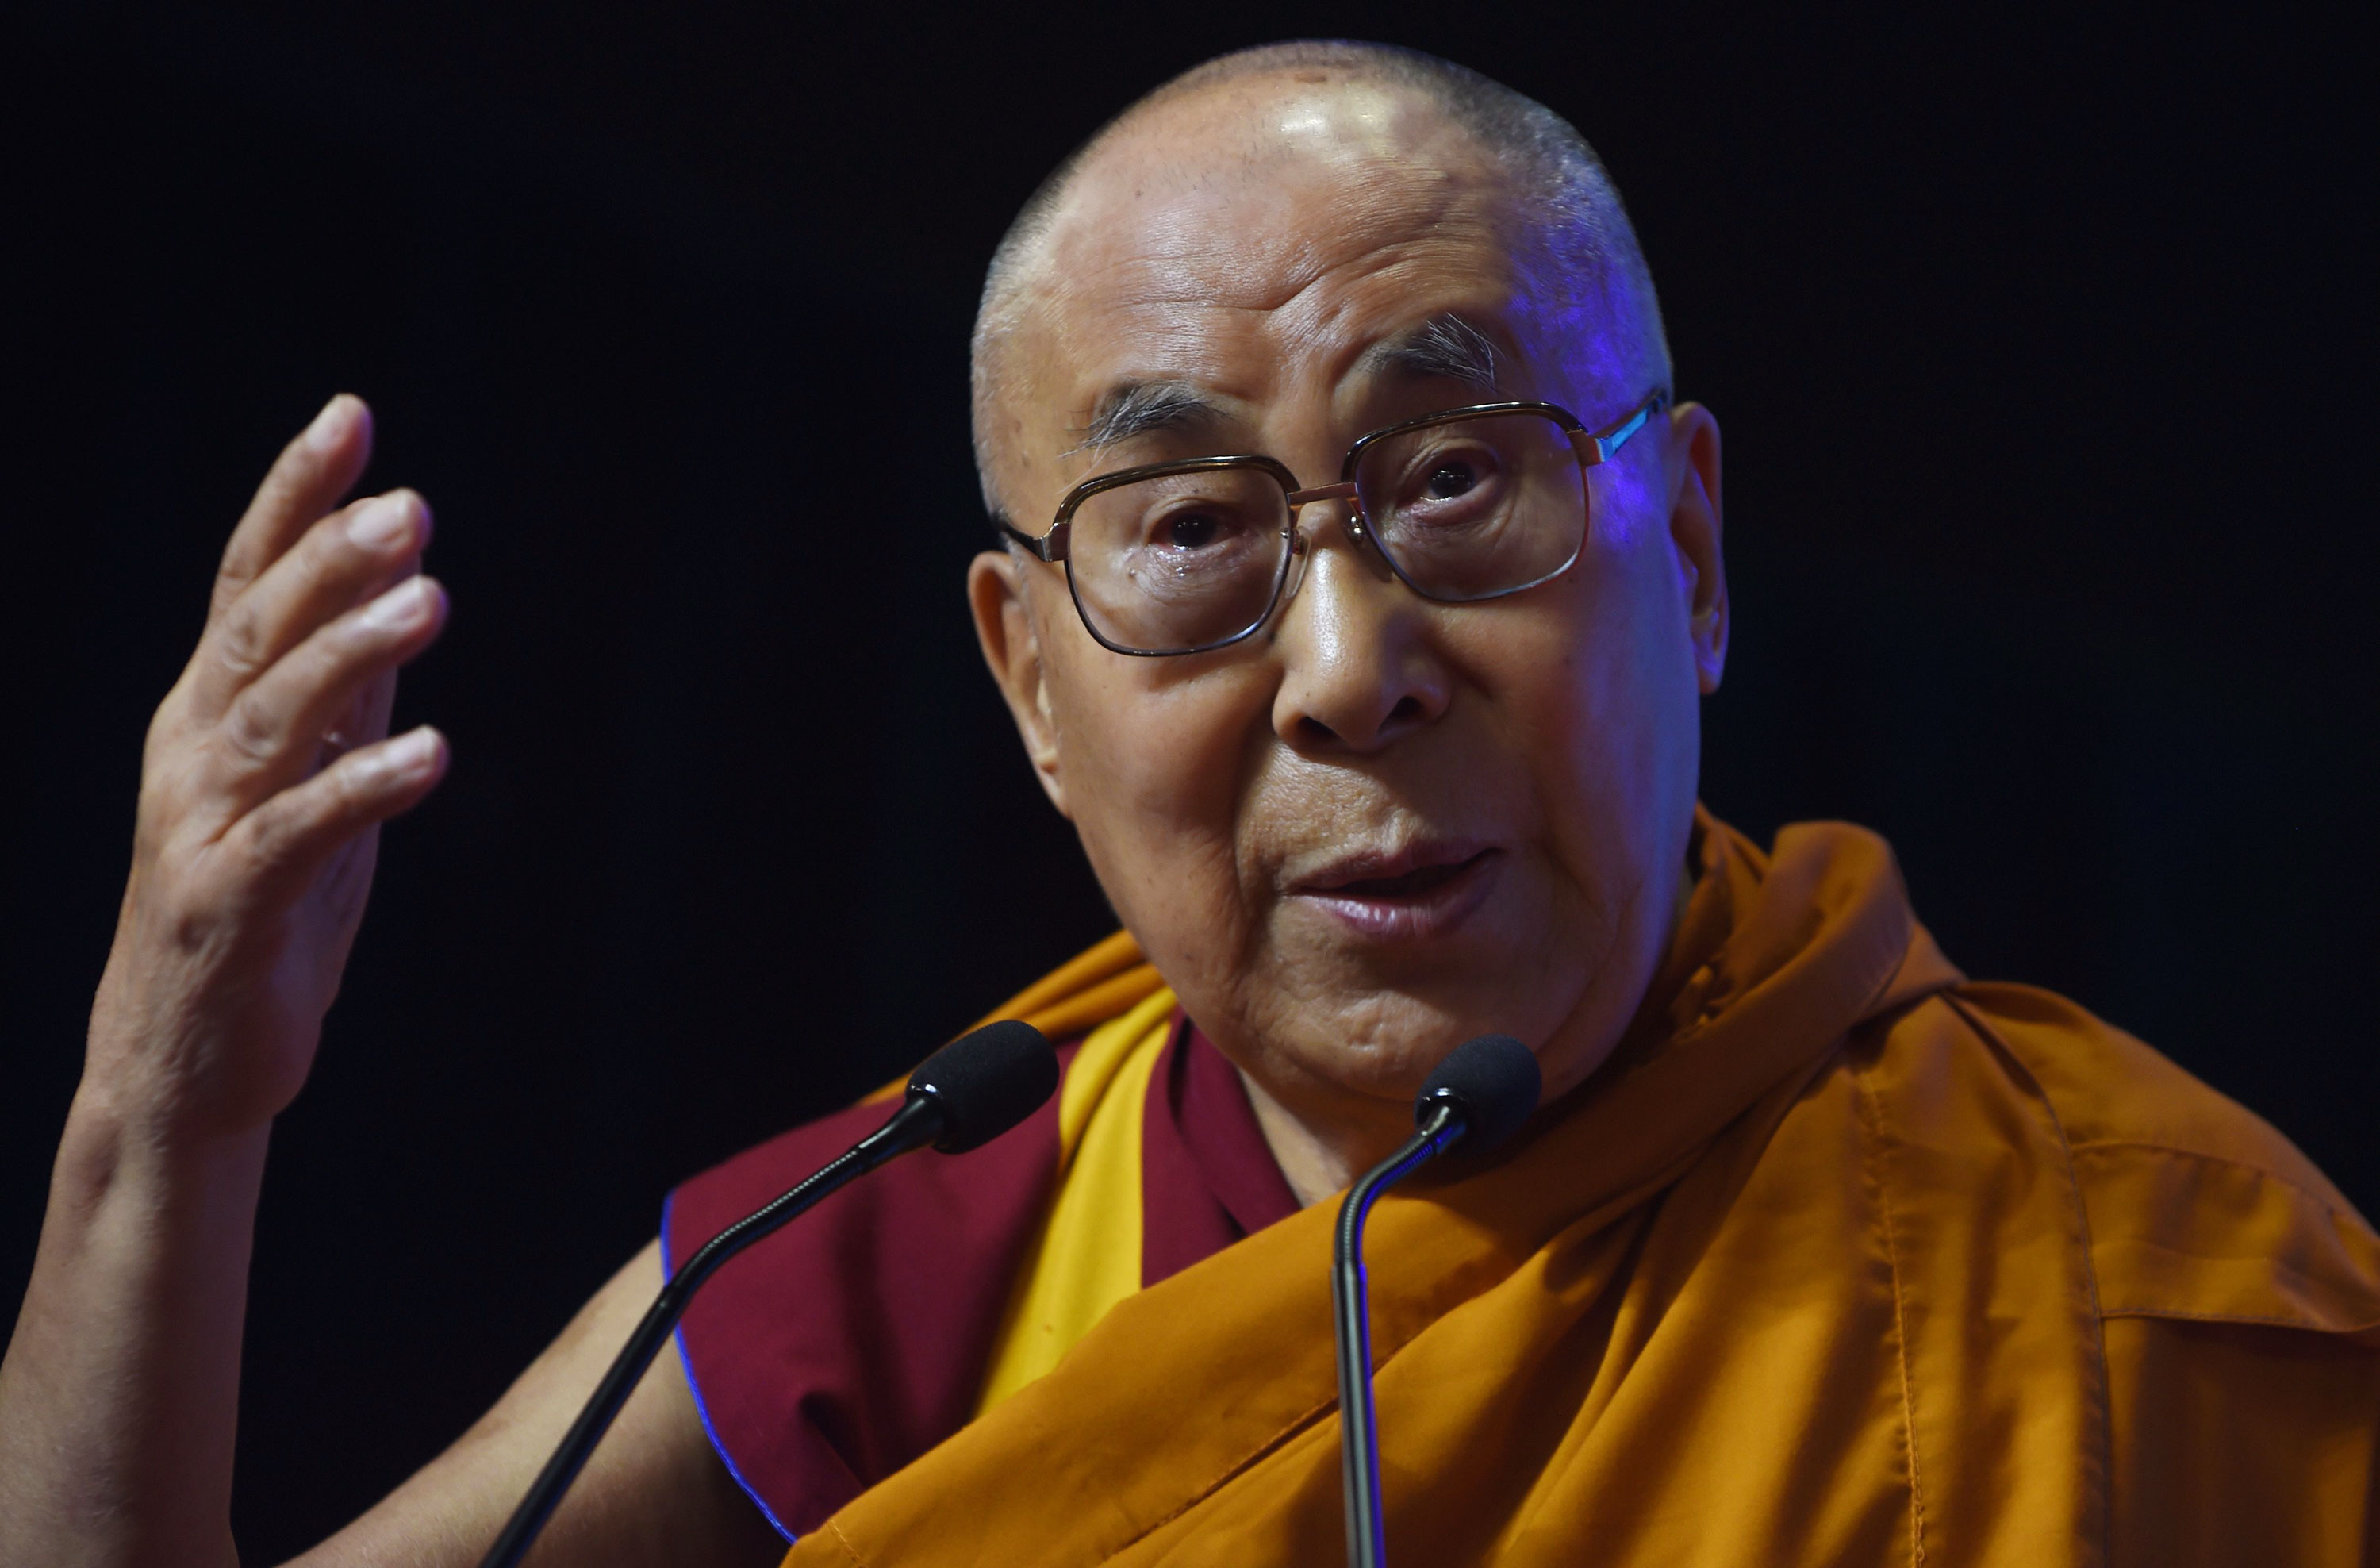 The Dalai Lama speaks during an inter-faith religious conclave in Mumbai, India, on August 13, 2017.